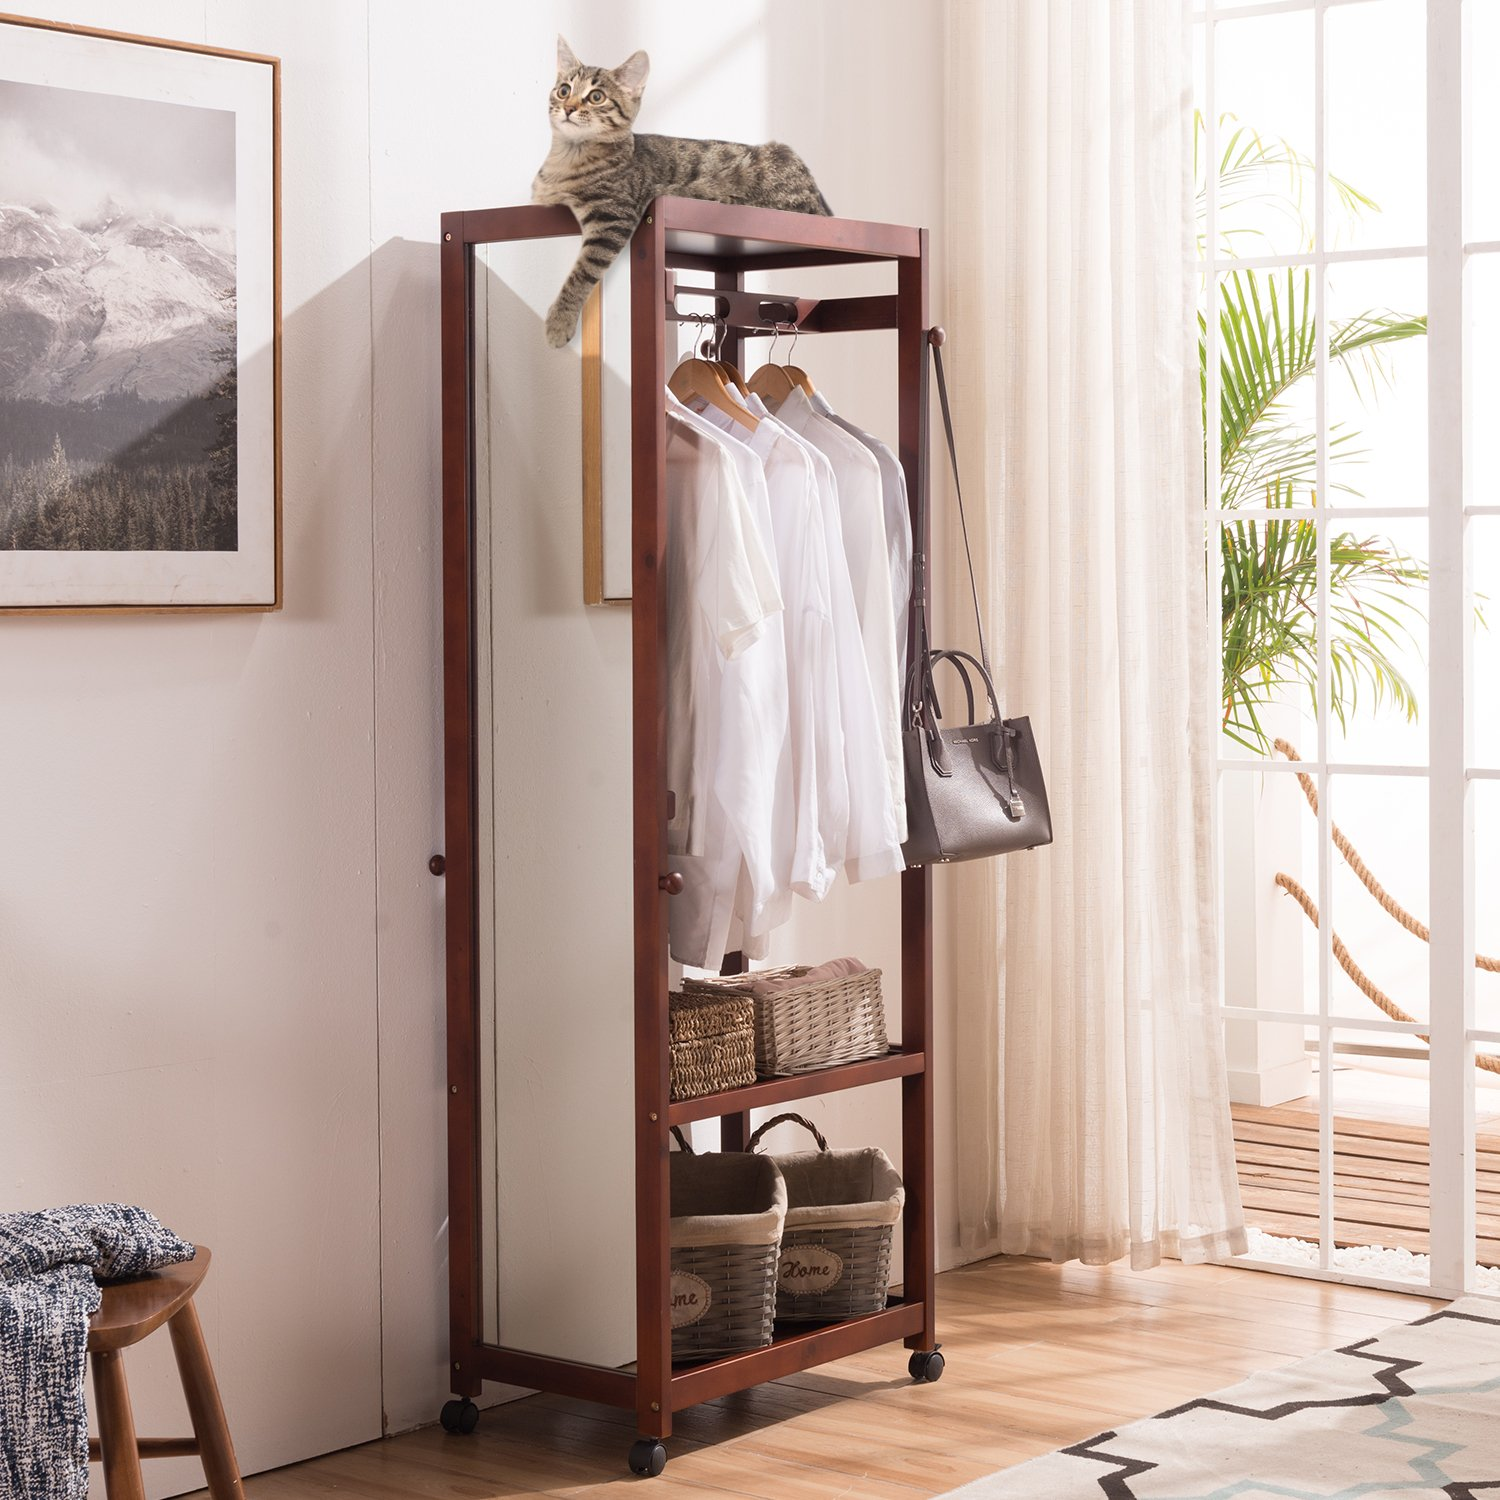 Tiny Times 67'' Tall Free Standing Closet Wardrobe Bedroom Armoires with Full Length Dressing Floor Mirror,Brake Wheels,Hanger Rod,Coat Hooks,Entryway Storage Shelves Organizer-Solid Pine Wood,Brown by Tiny Times